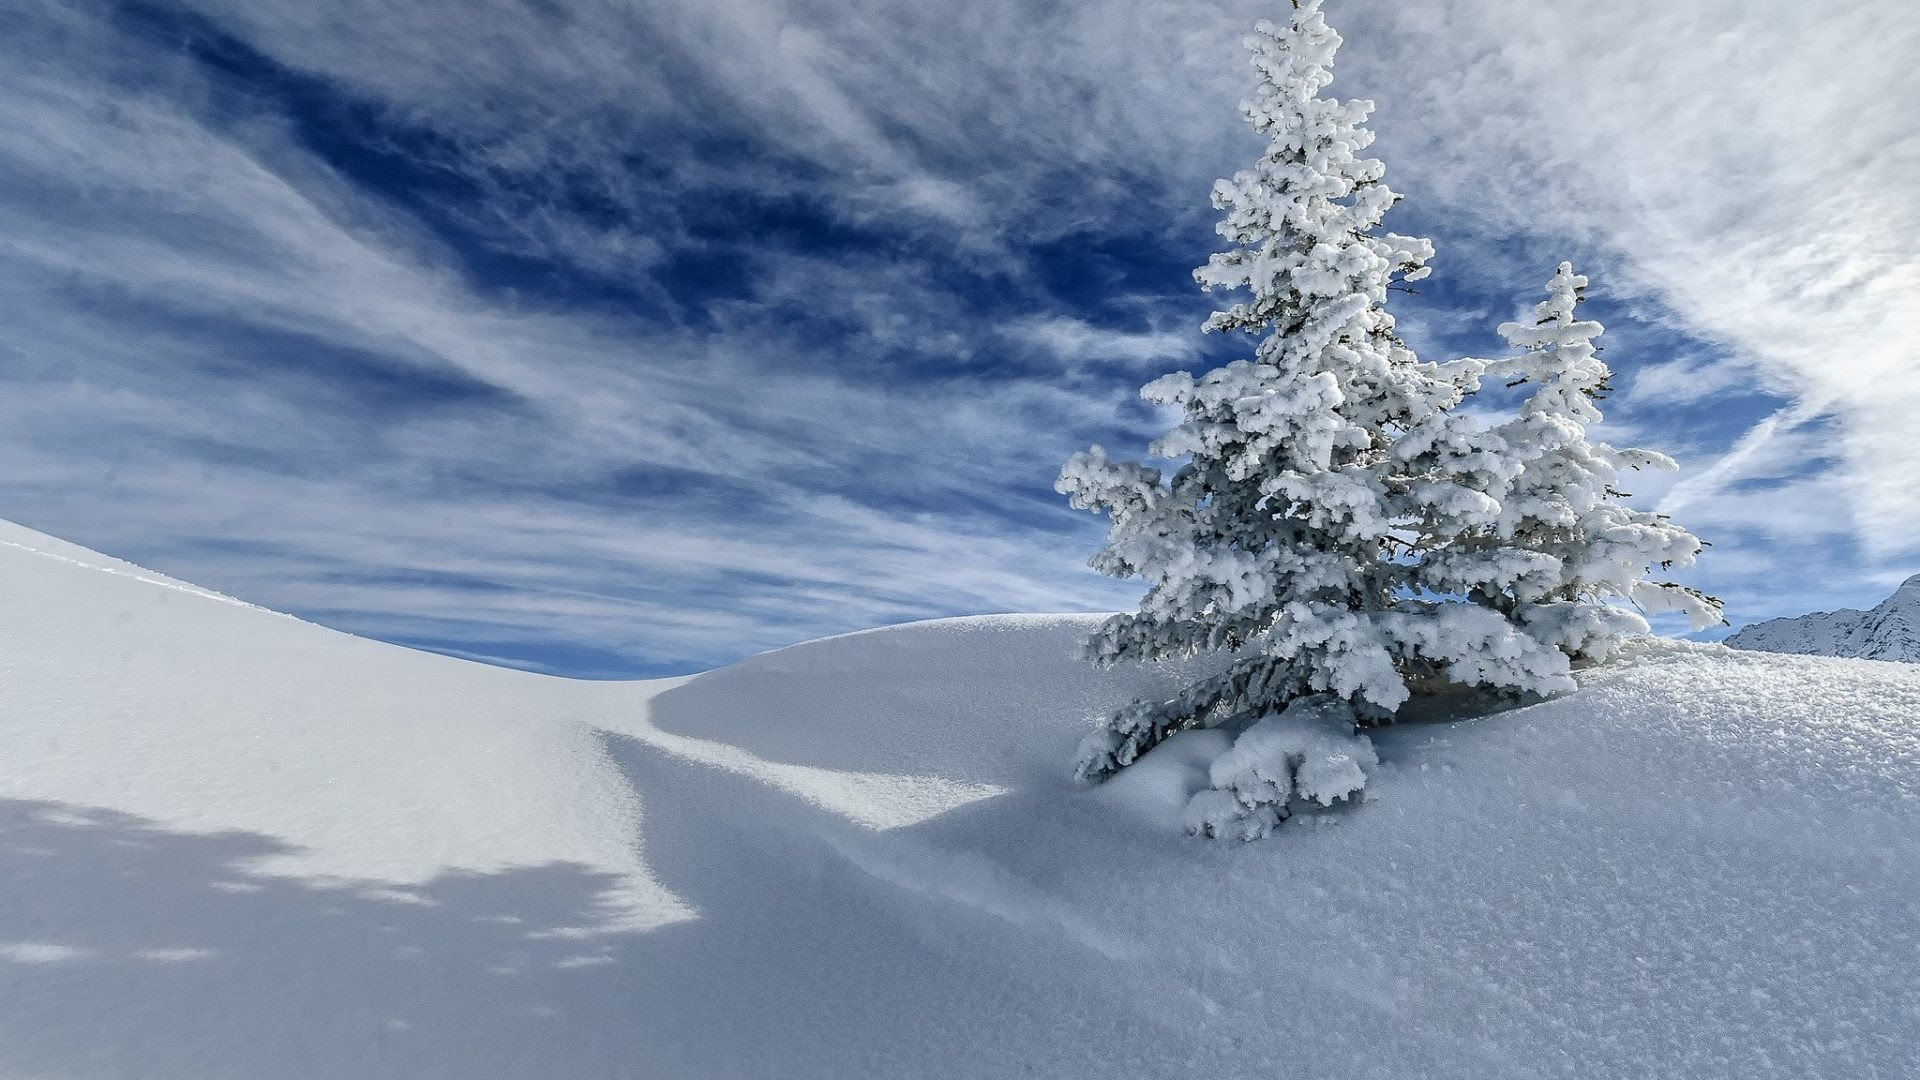 Snow Wallpapers 1920x1080 Full Hd: Winter Wallpaper PC (57+ Images